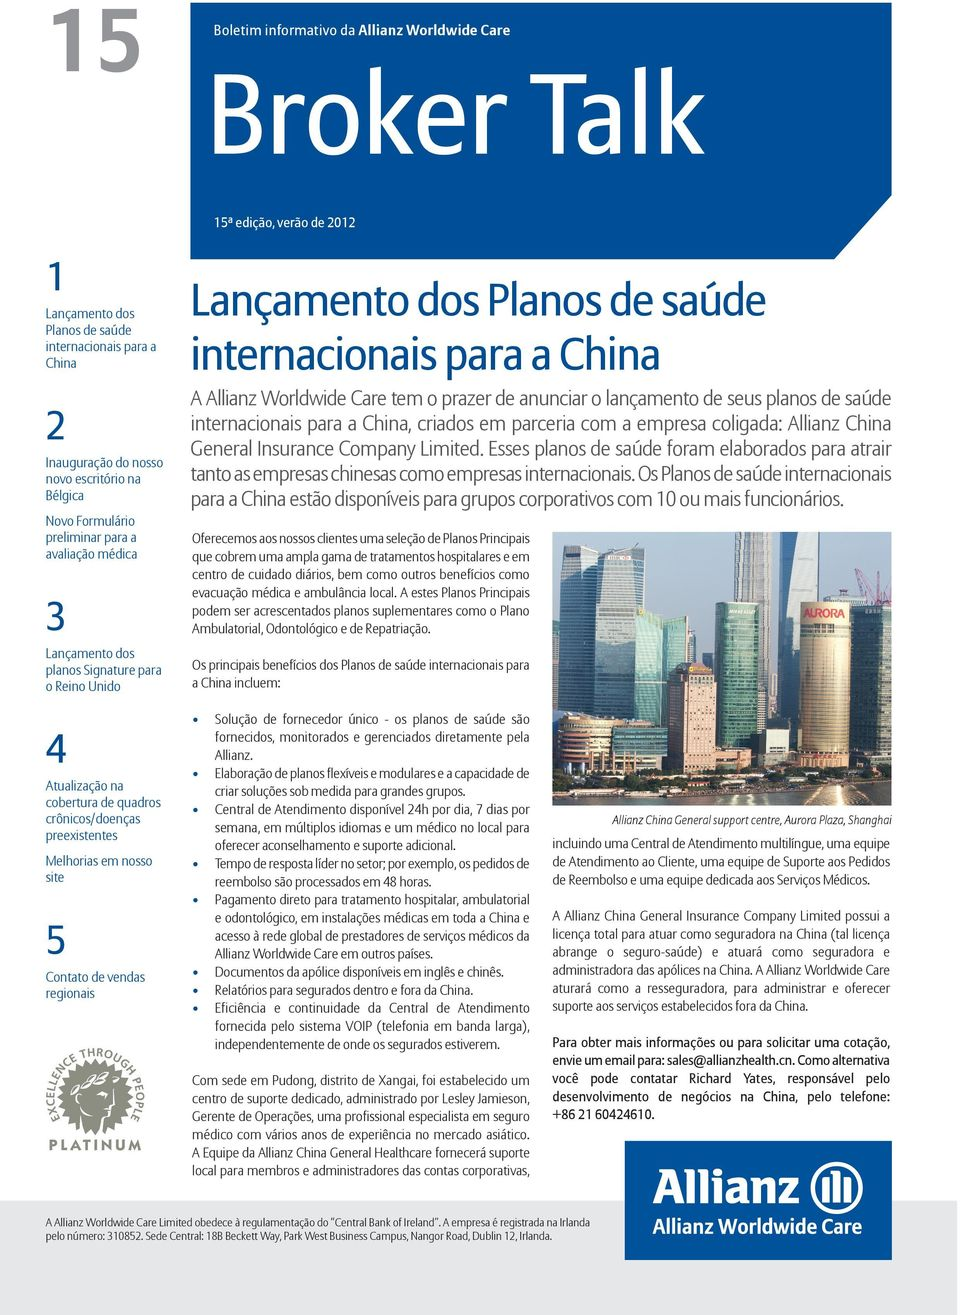 internacionais para a China, criados em parceria com a empresa coligada: Allianz China General Insurance Company Limited.